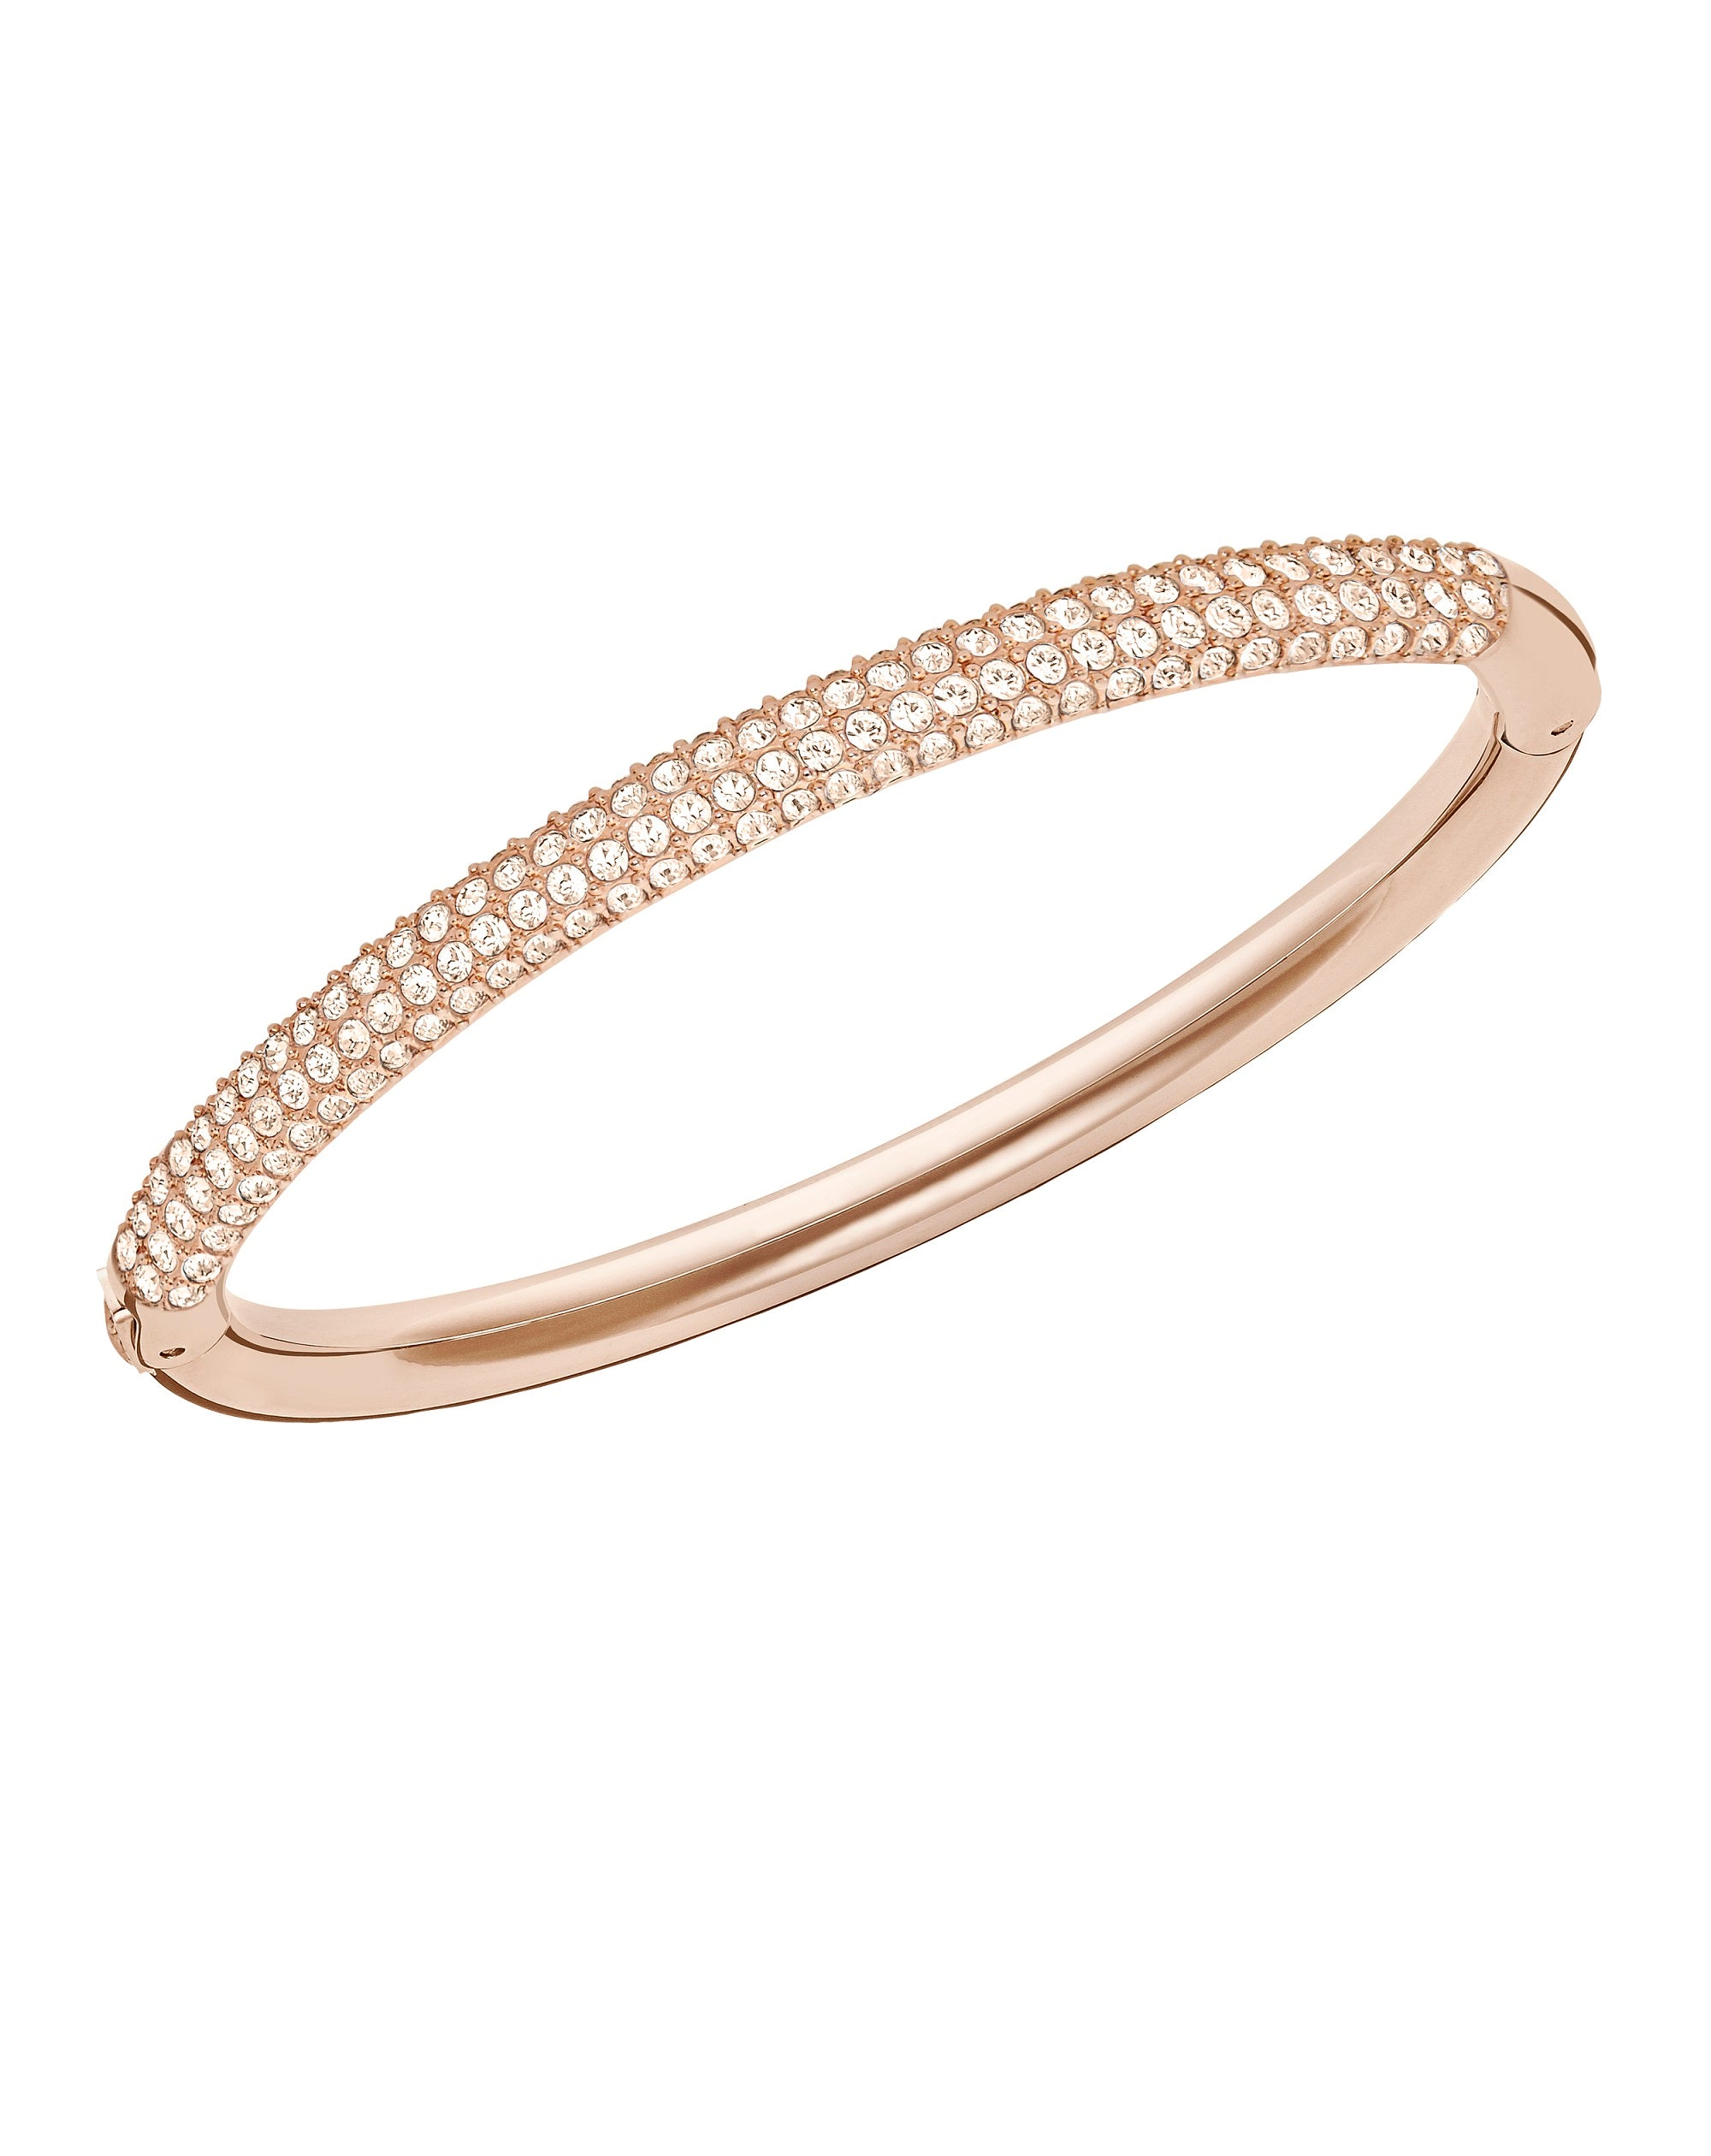 5032850 Swarovski Stone Rose Bangle